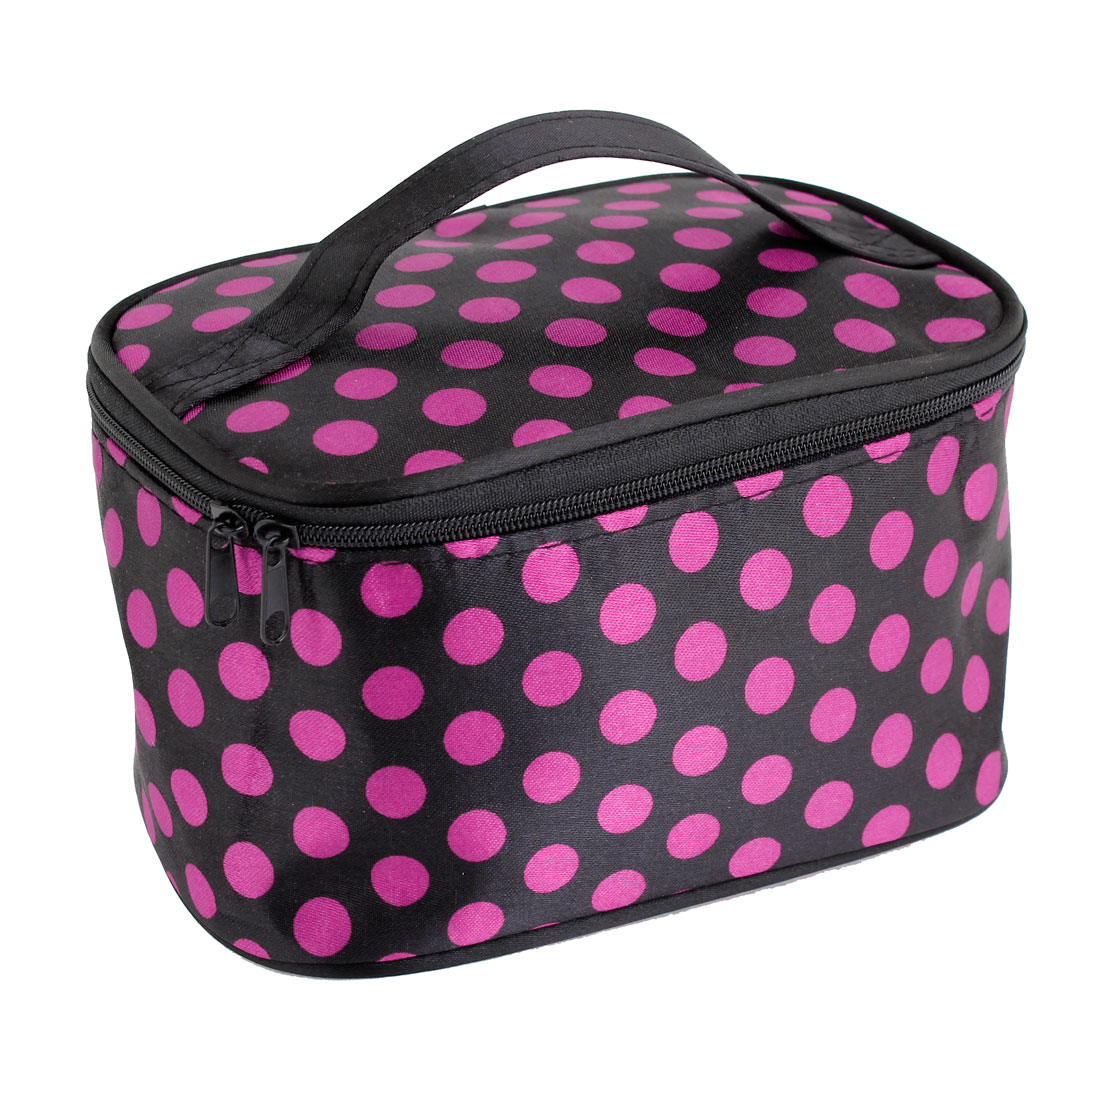 Fuchsia Dots Pattern Black Cosmetic Bag Make Up Pouch Bag Case for Women